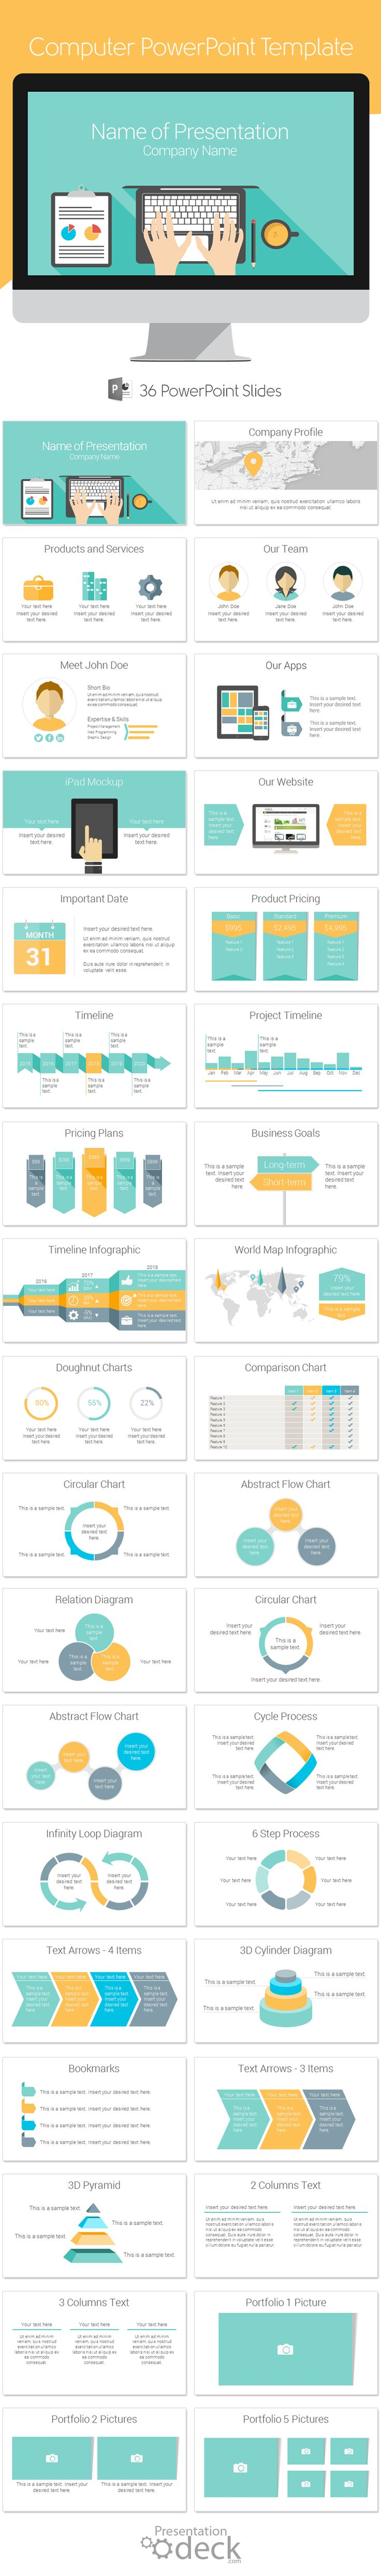 Computer PowerPoint template in flat design style with 36 pre-designed slides. This template is a great choice for presentations on marketing, programming, data entry, etc.  #powerpoint #flatdesign #powerpoint_template